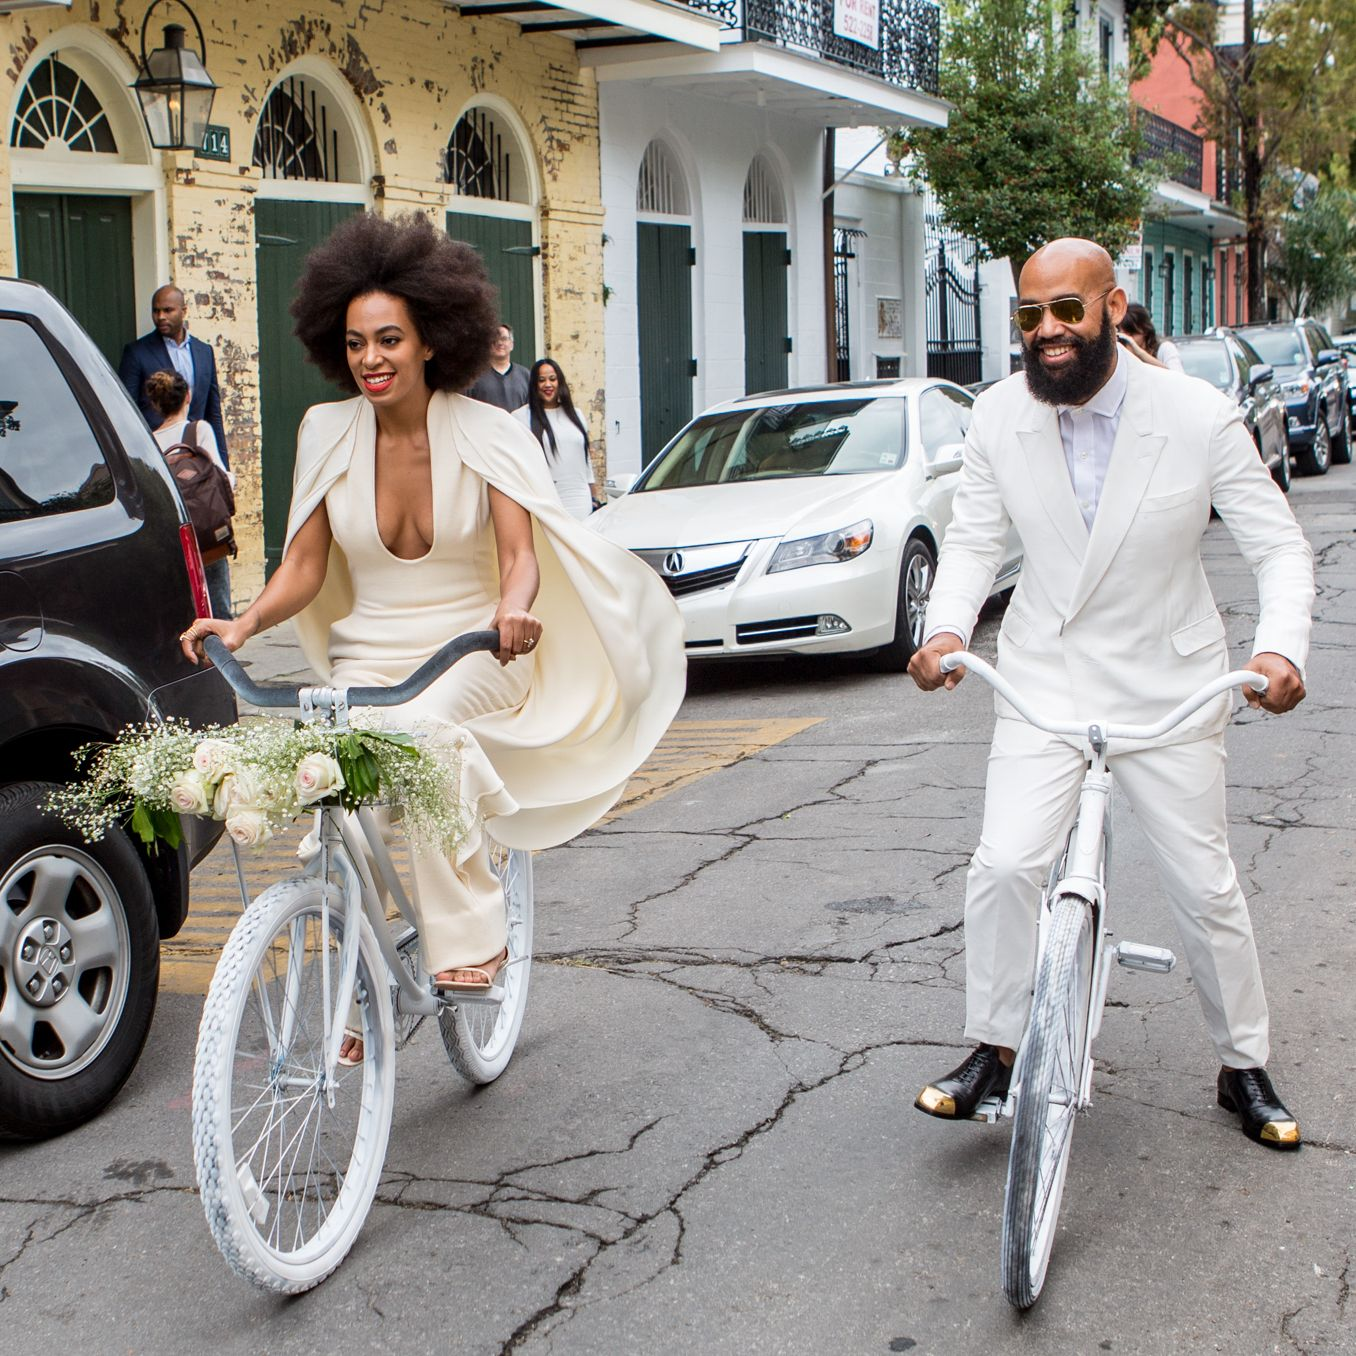 Famous wedding dresses  The  Most Iconic Wedding Dresses of All Time  Solange knowles